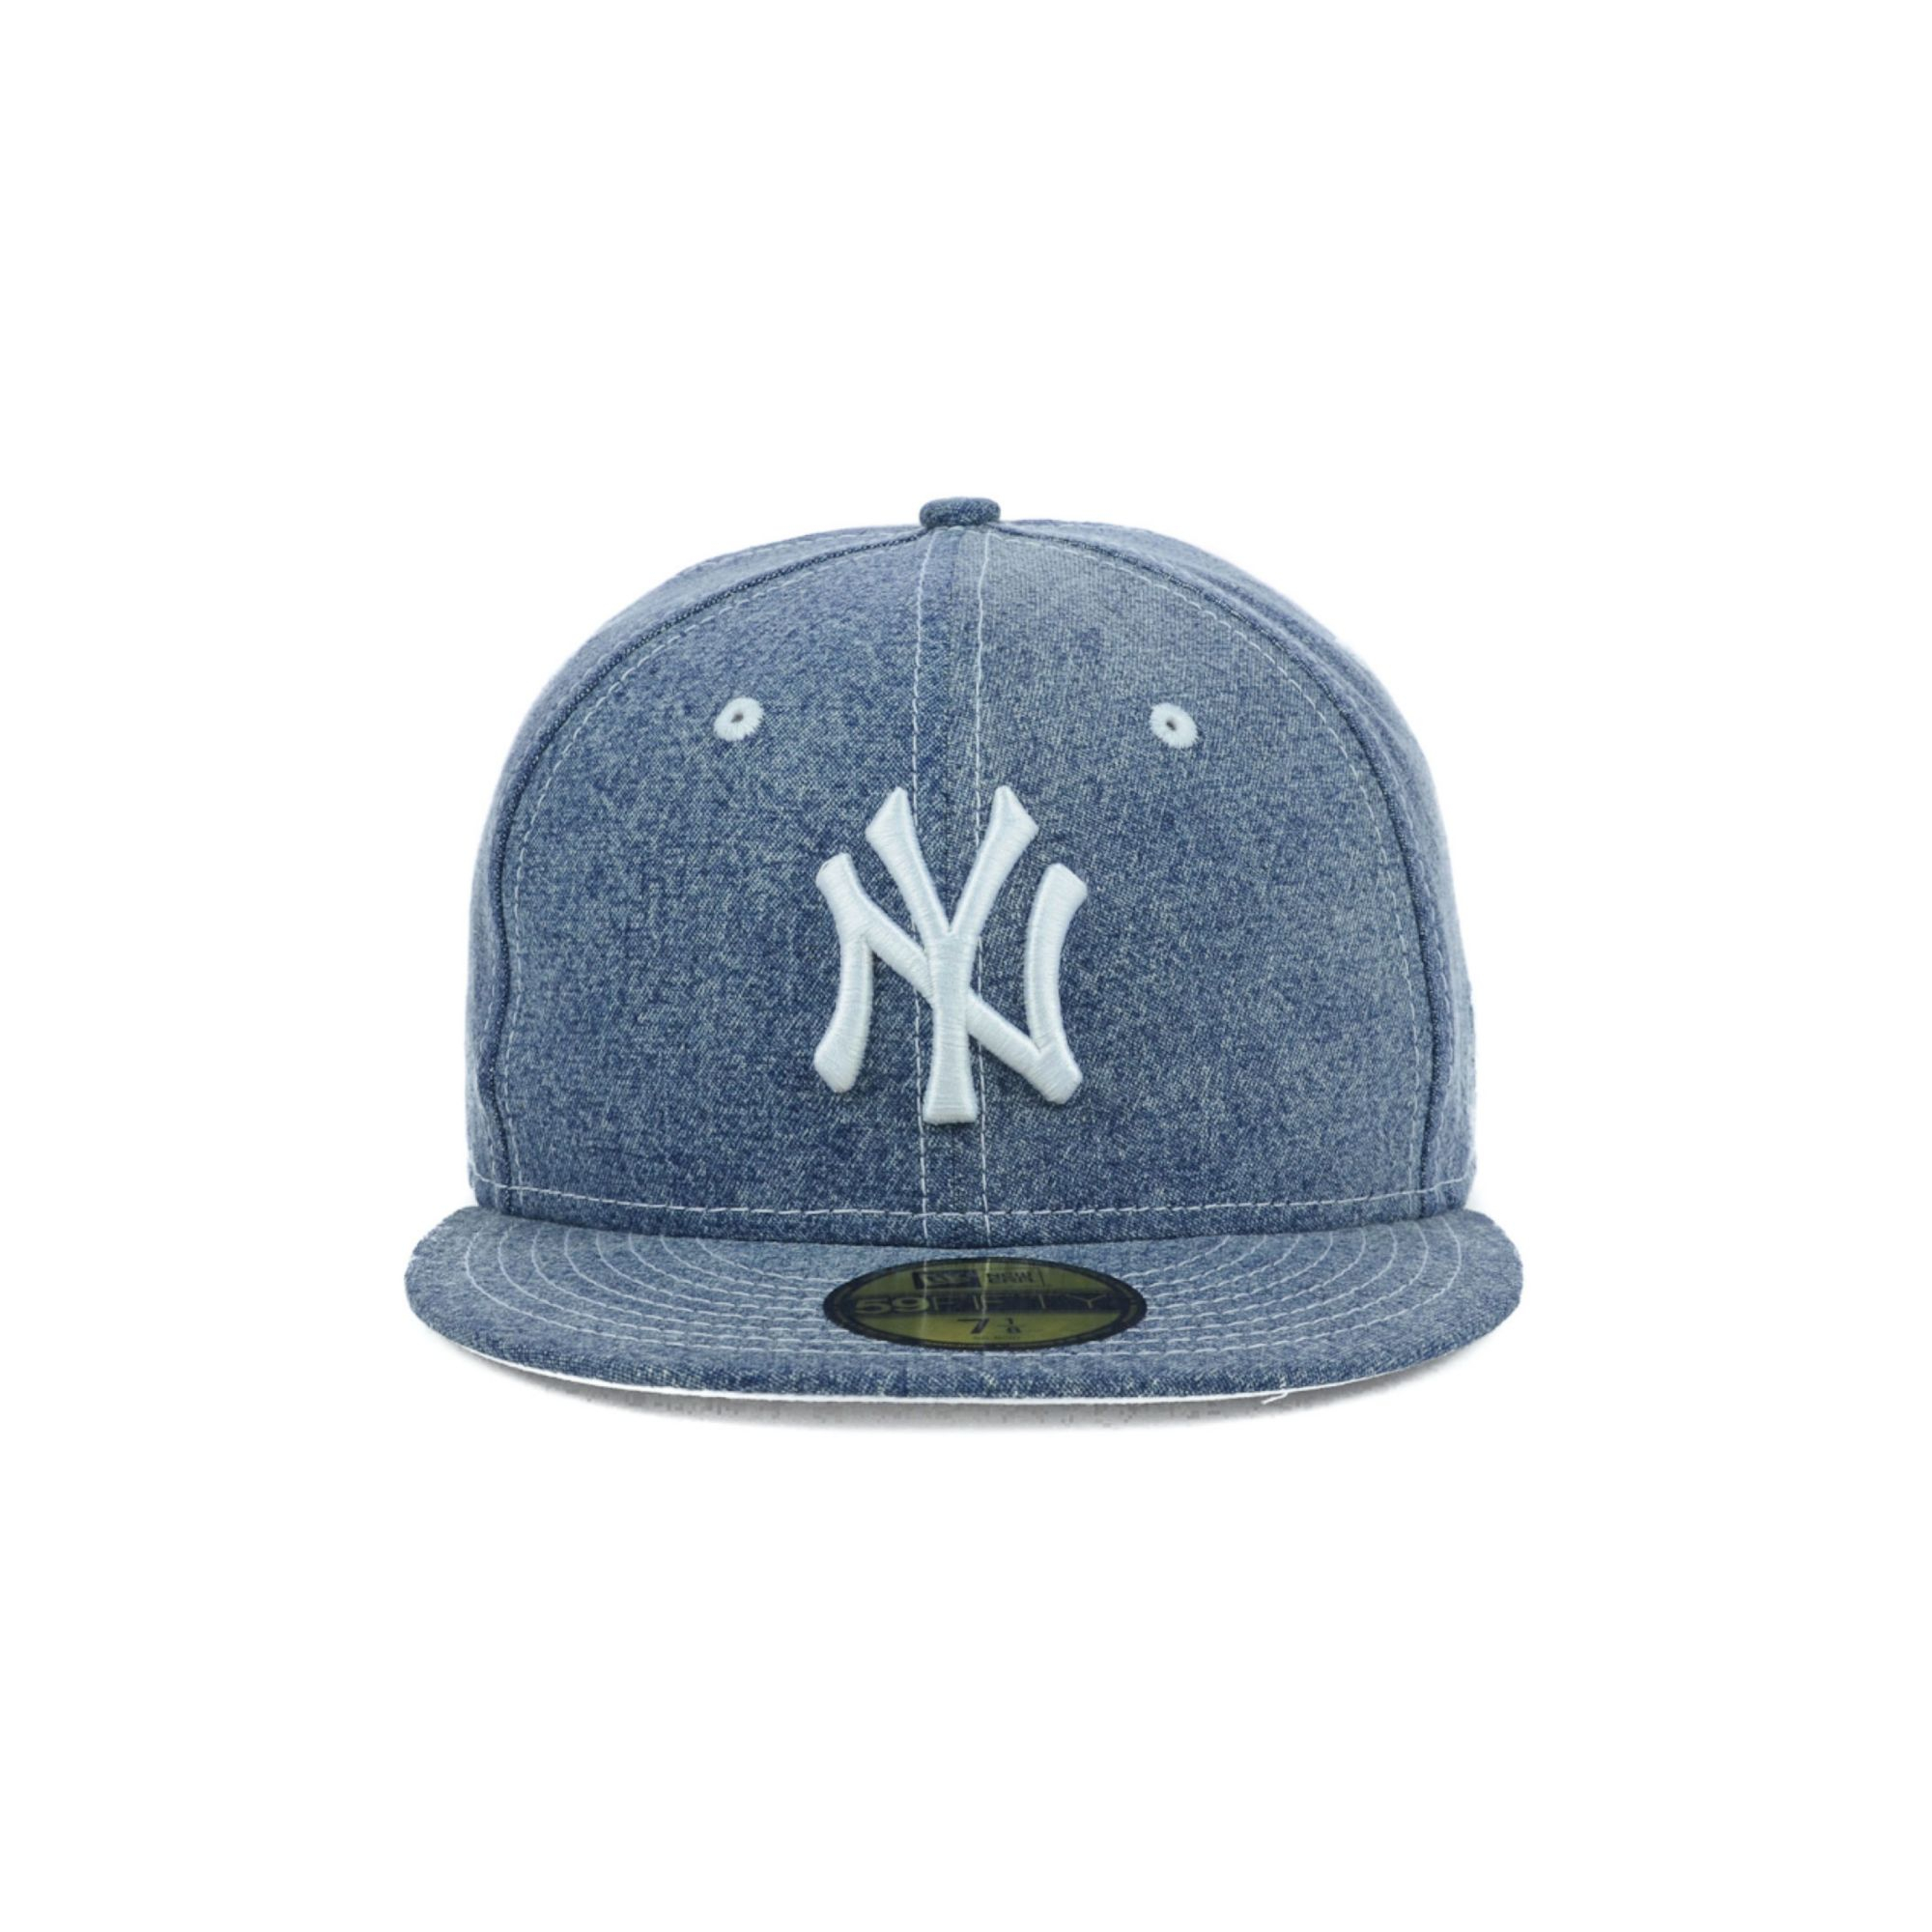 9691c7ce0f7 ... new style coupon code for lyst ktz new york yankees mlb classic denim  59fifty cap in